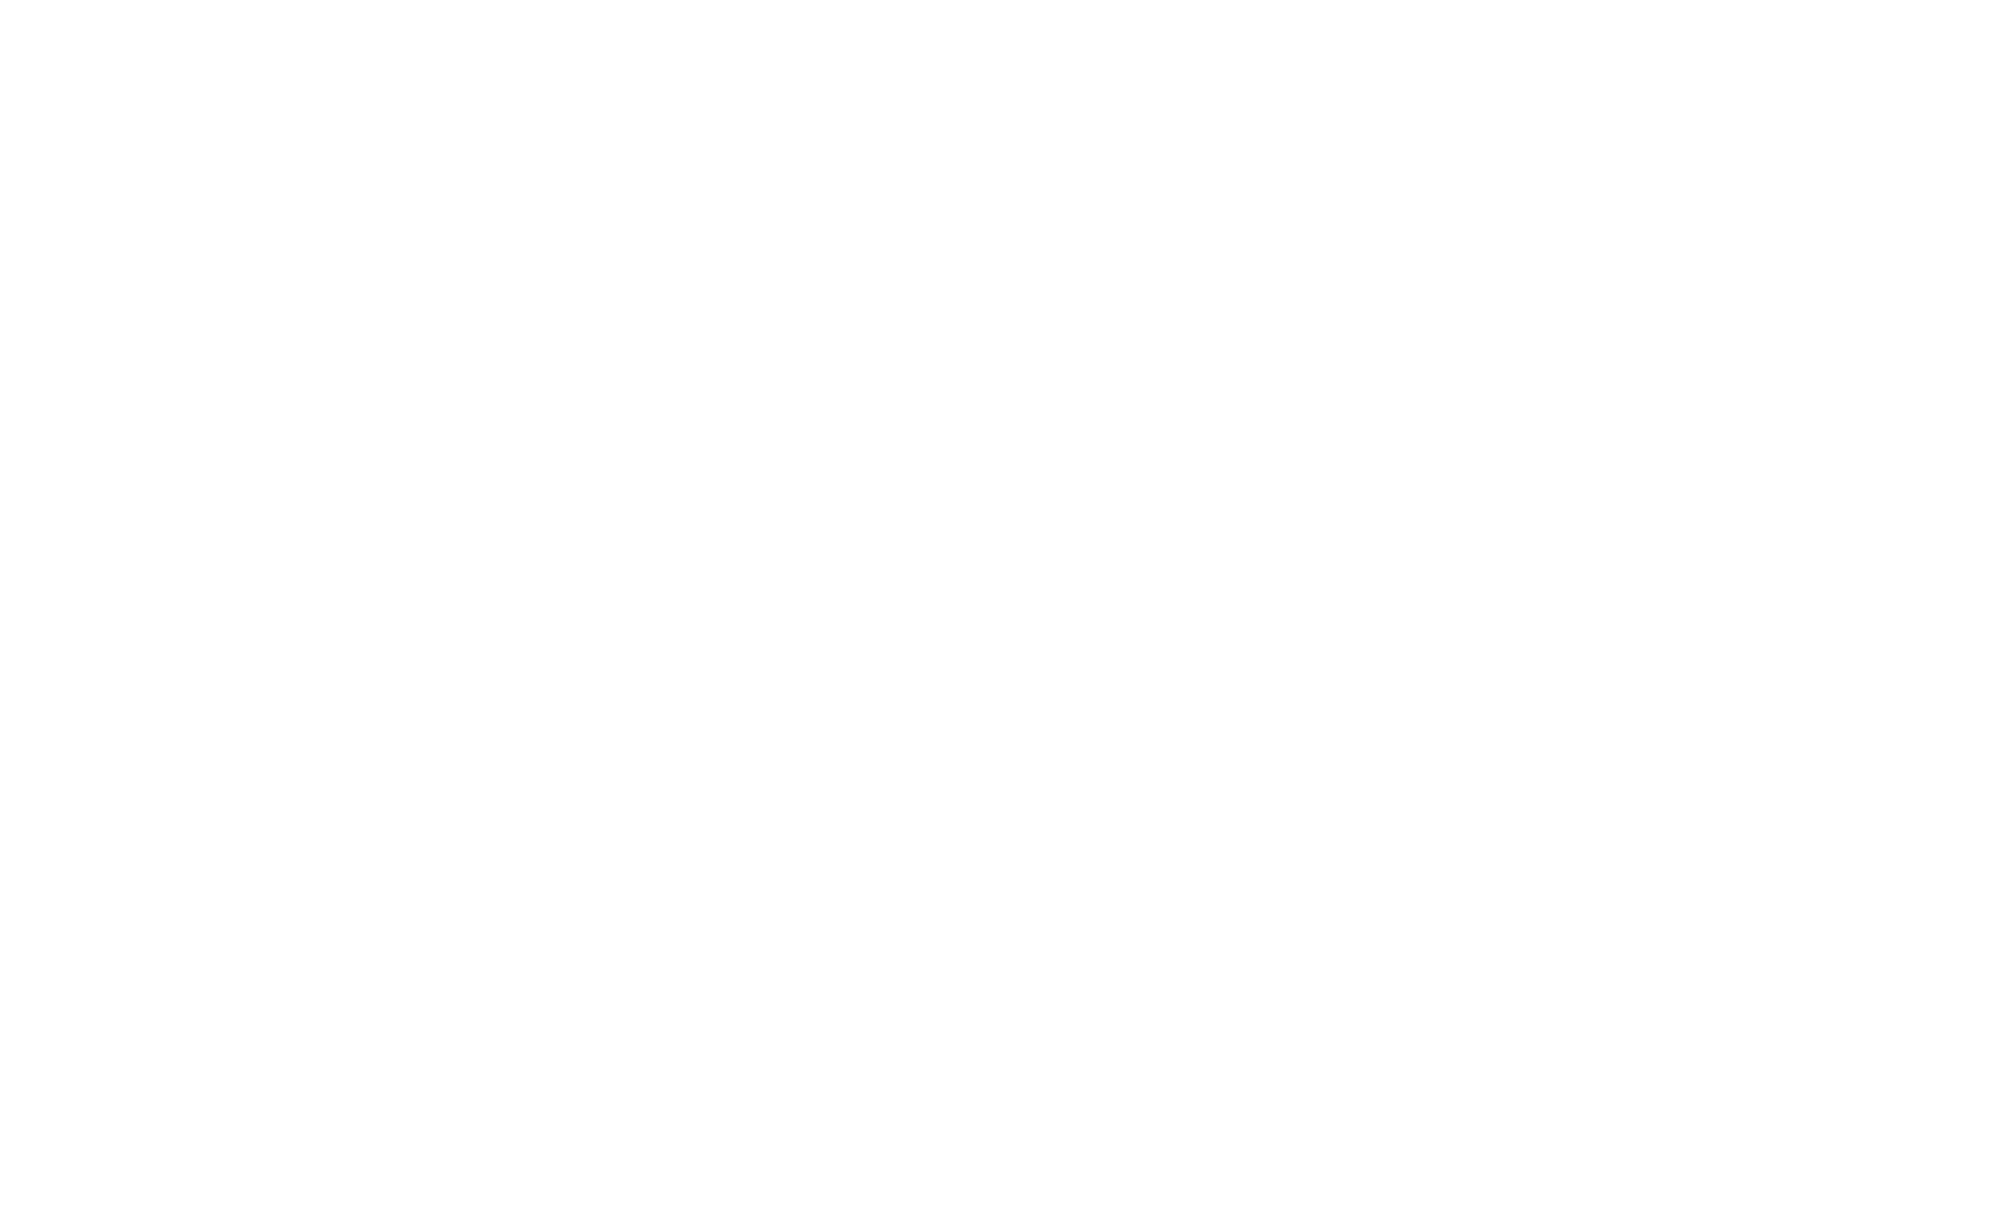 For the people who want to look the future in the eyes